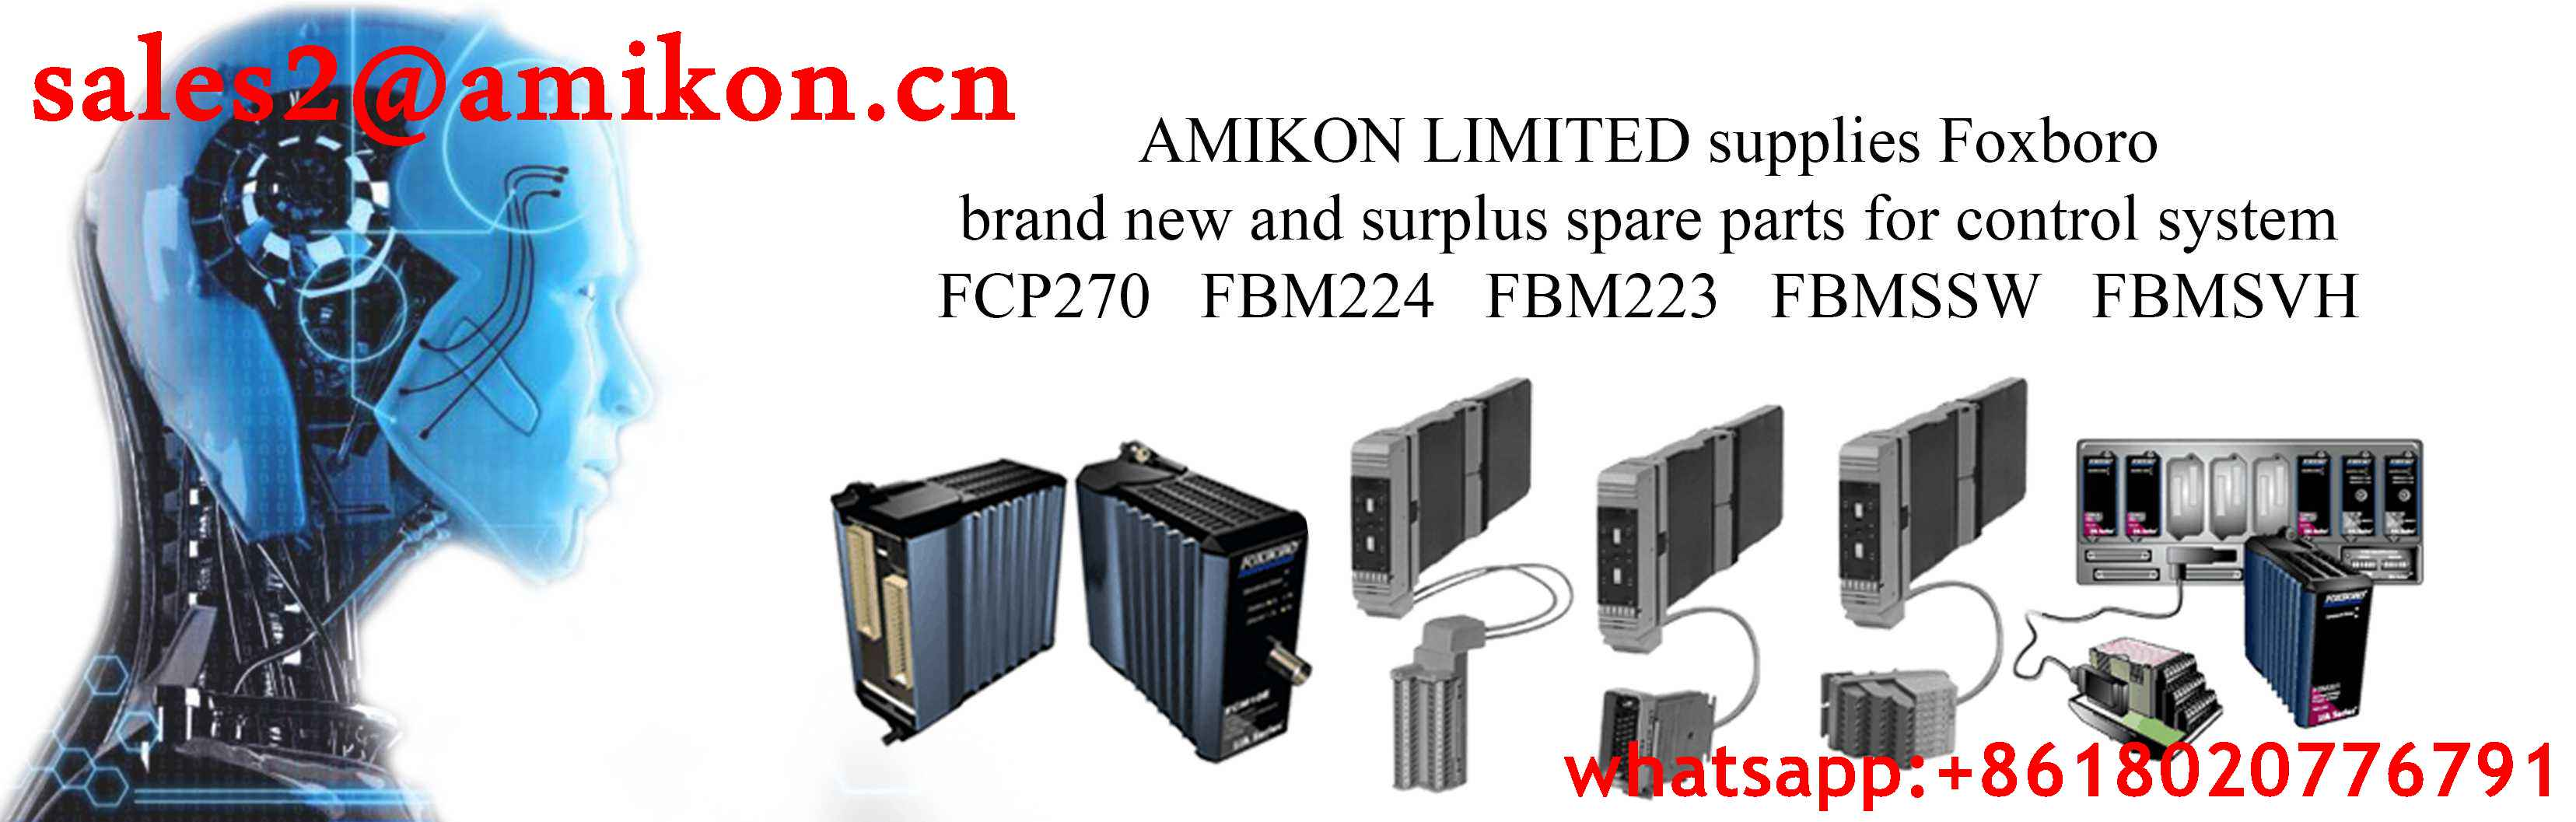 IC697CPX935 GE General Electric sales2@amikon.cn PLC DCS Industry Control System Module